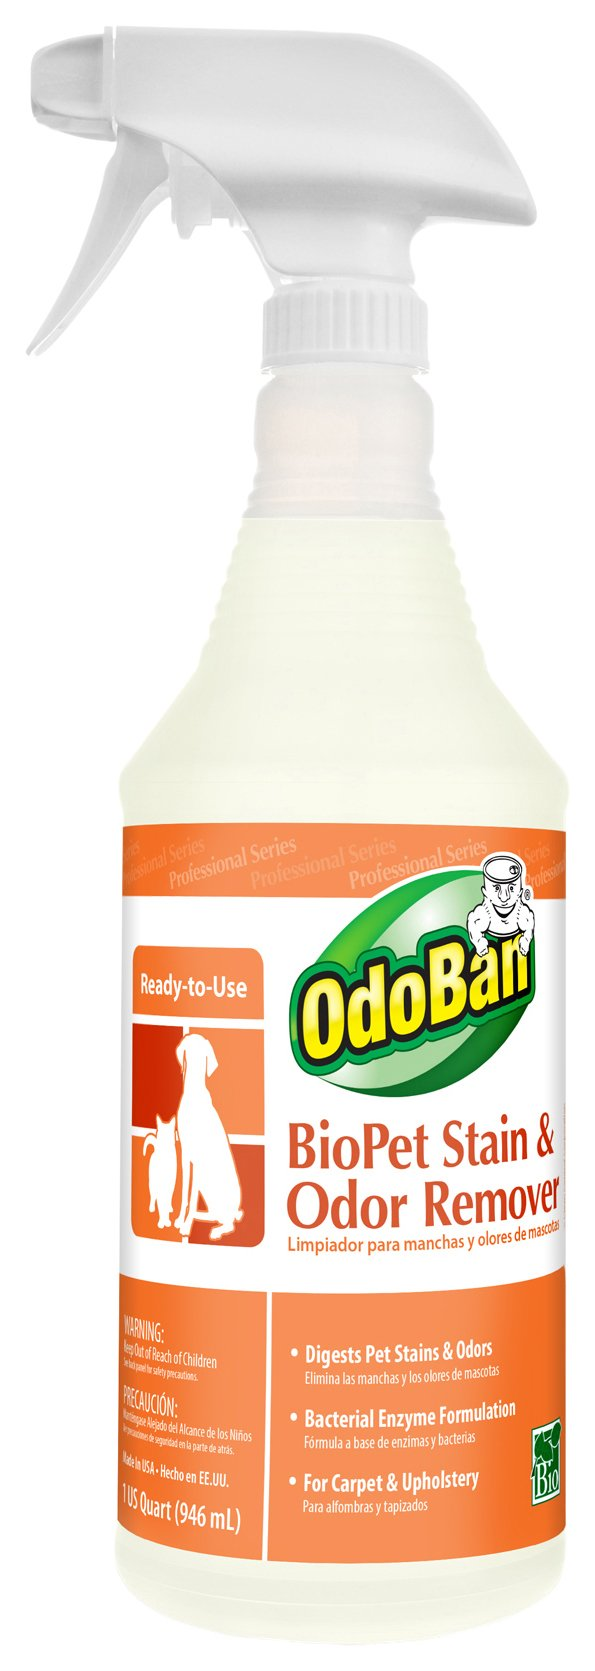 OdoBan 926262-QC12 Ready-to-Use BioPet Stain and Odor Remover (Pack of 12) by OdoBan (Image #1)